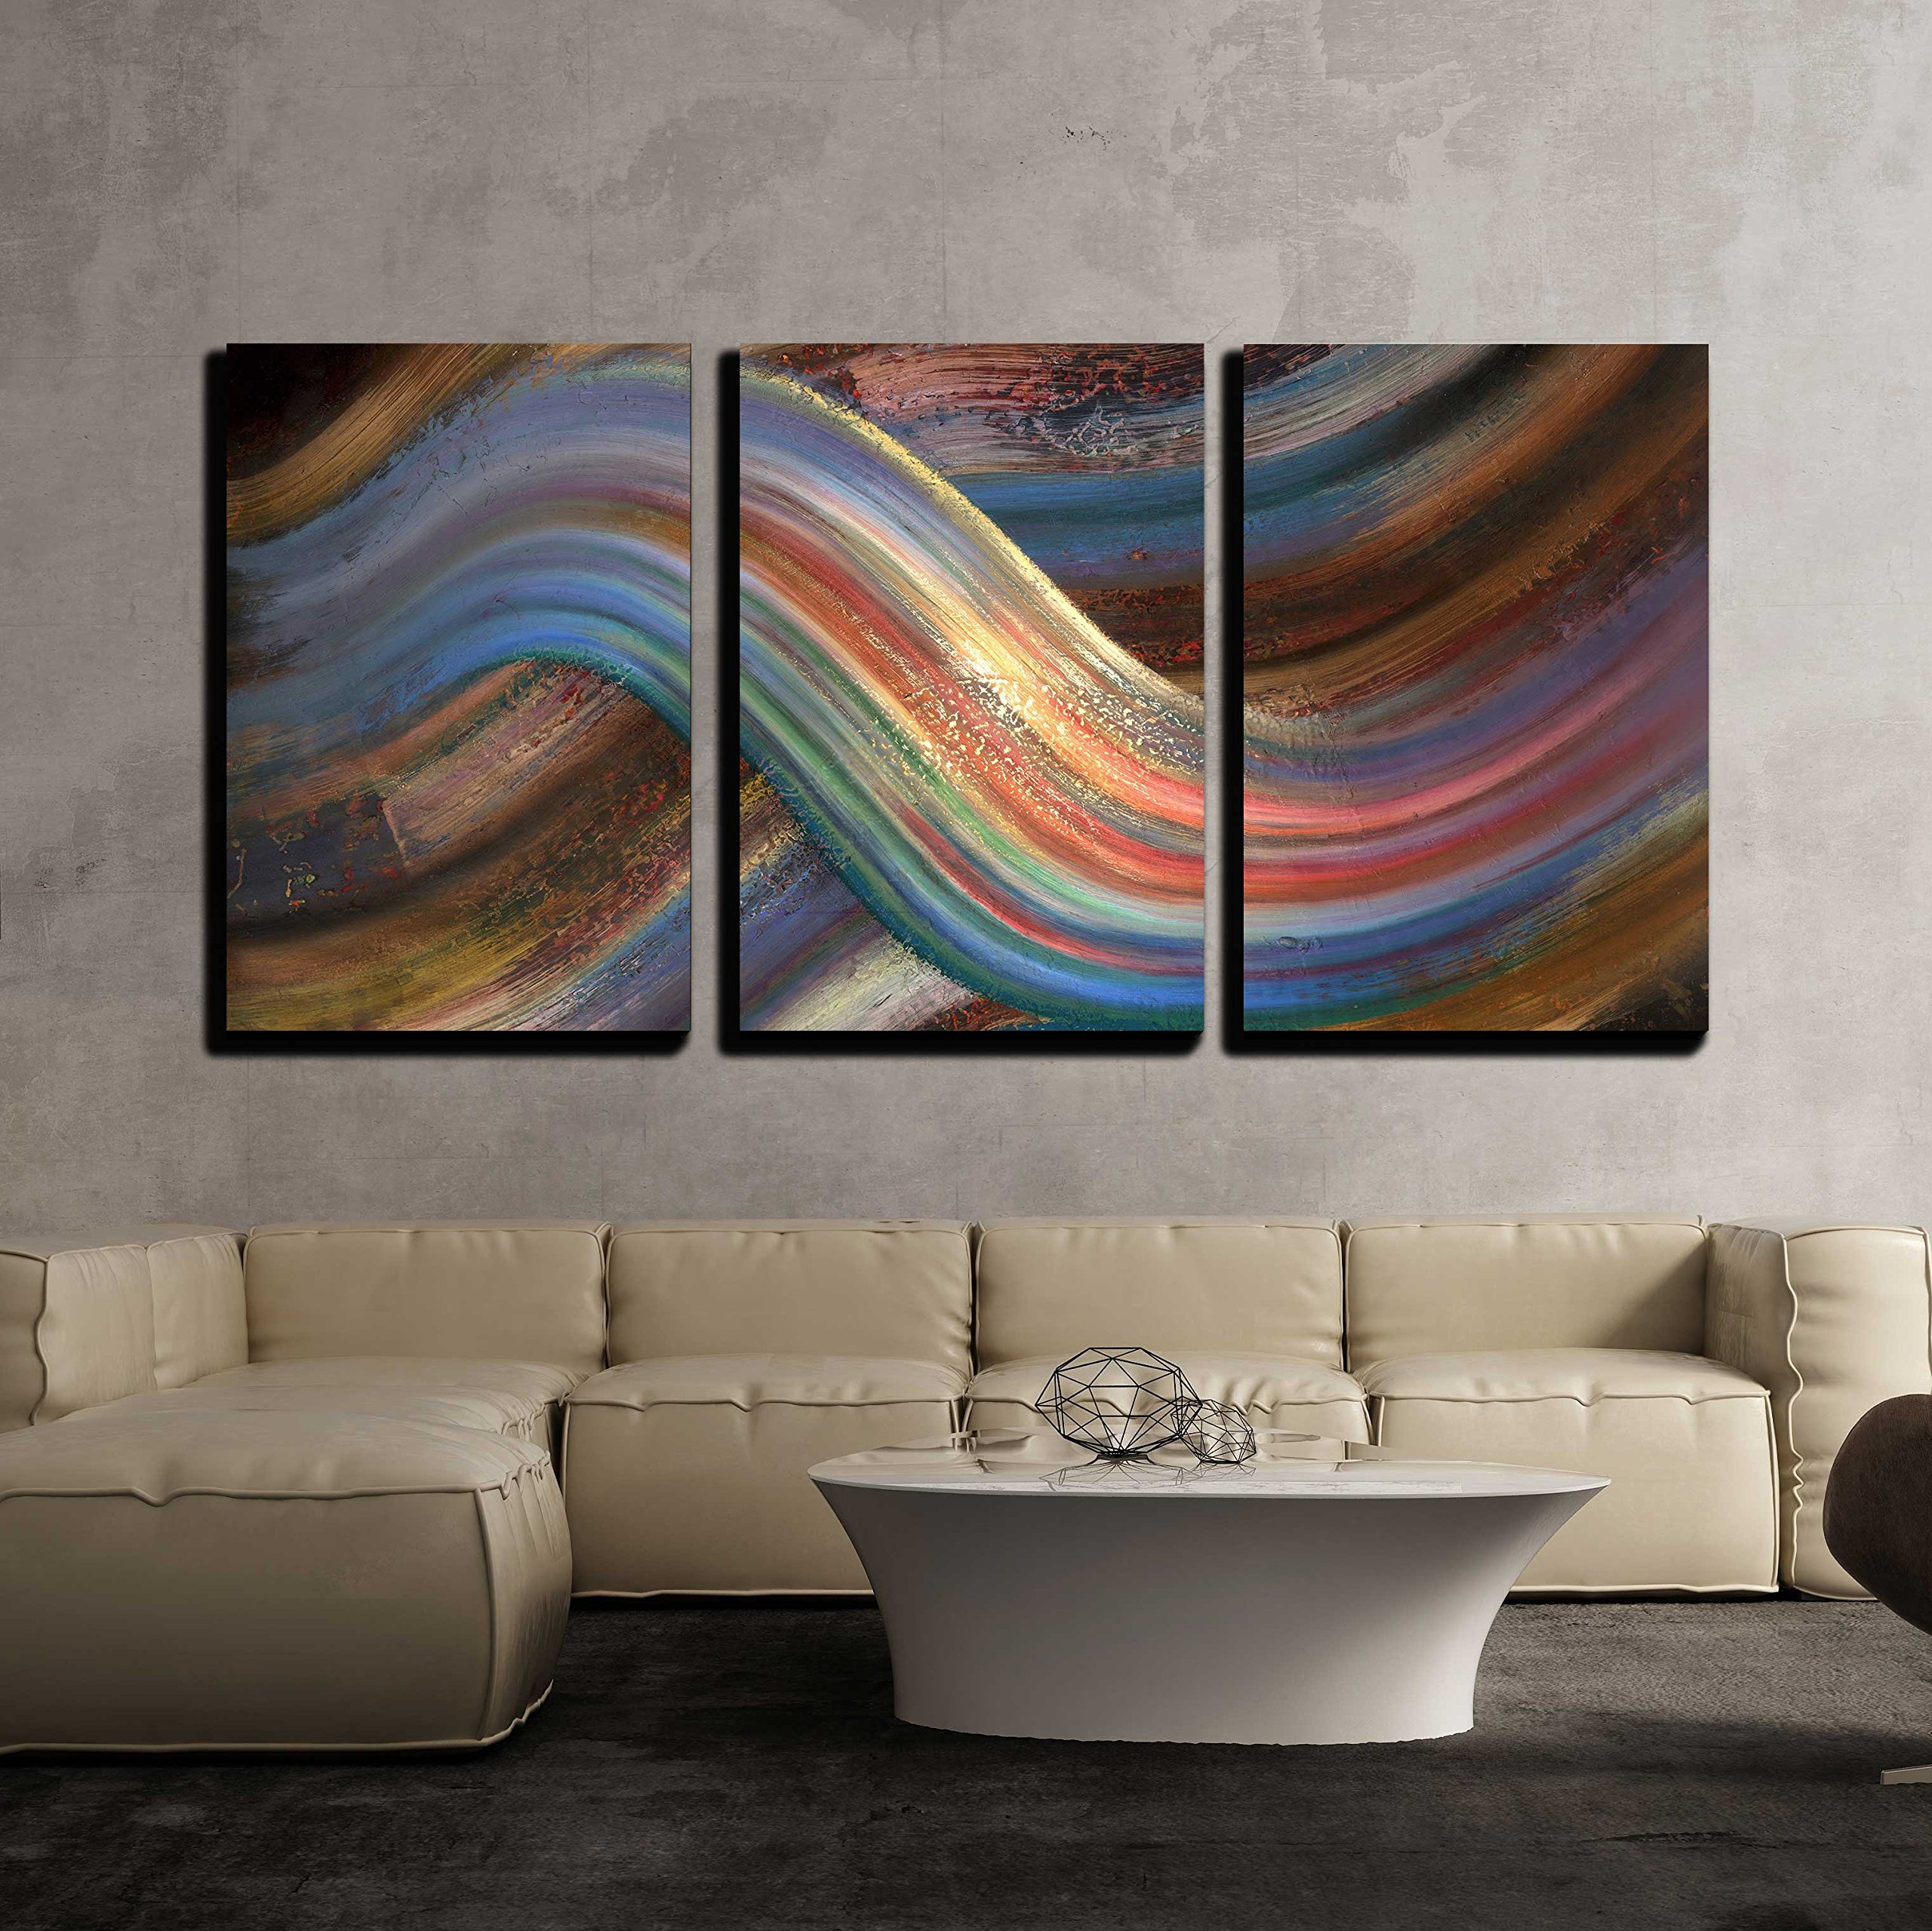 wall26 - 3 Piece Canvas Wall Art - Abstract Picture Showing a Symbolic Alternating Scenery - Modern Home Decor Stretched and Framed Ready to Hang - 24''x36''x3 Panels by wall26